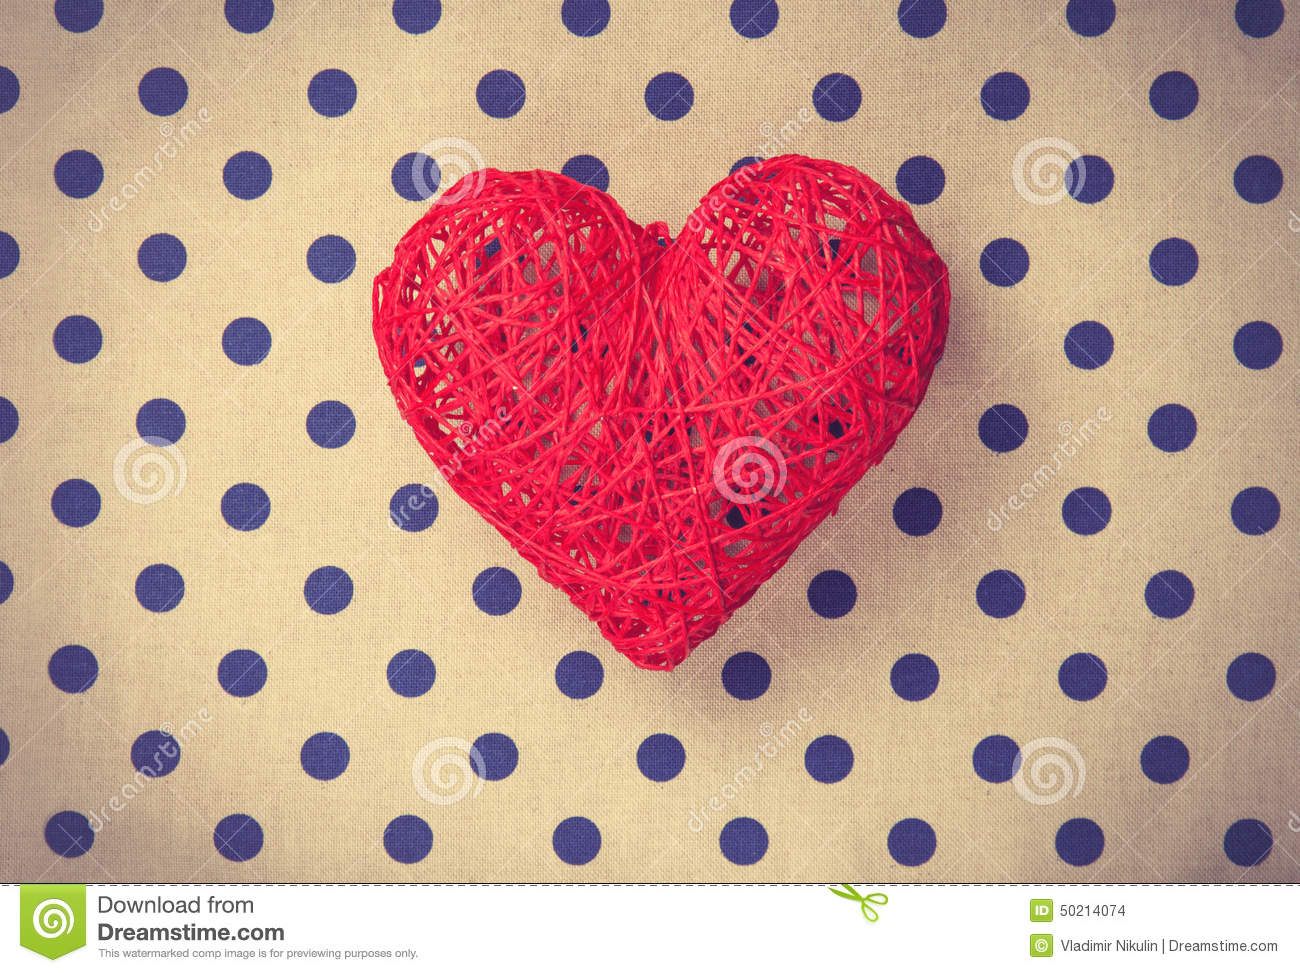 Heart Shape Decorate Toy On Polka Dot Background. Stock